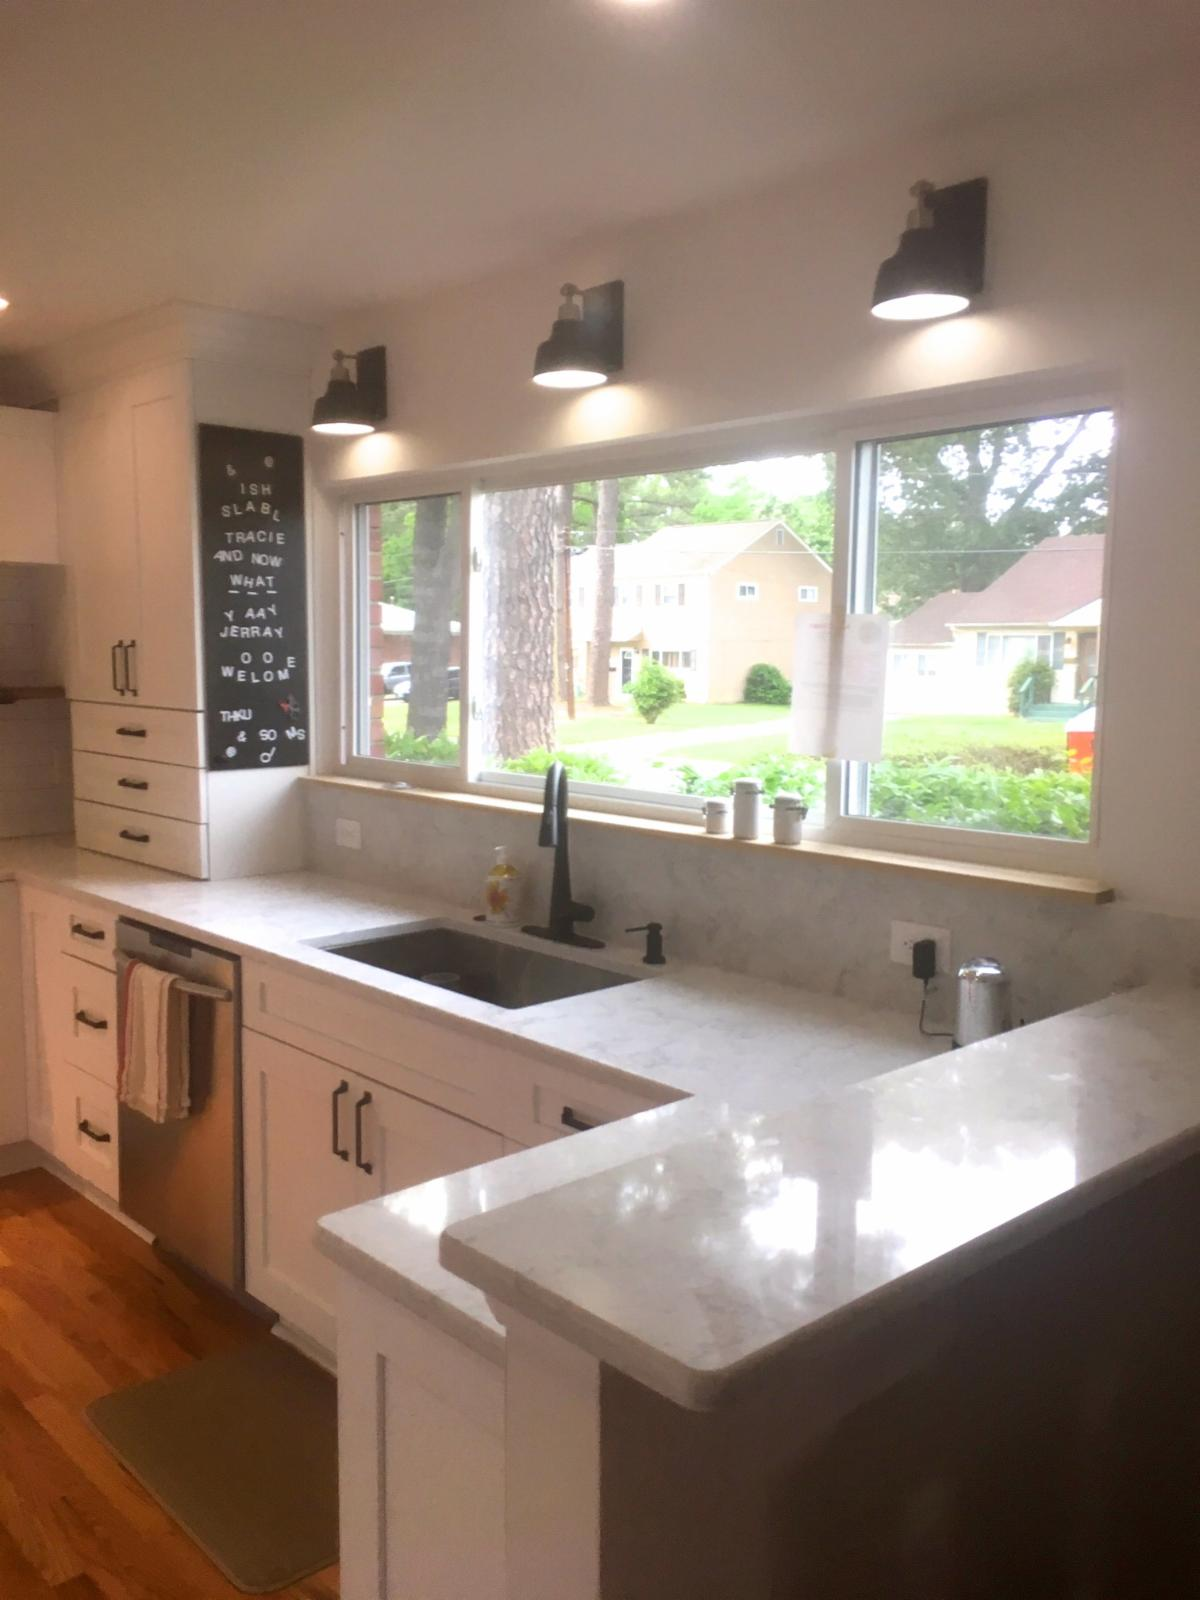 Sowers' Remodeled Kitchen Quartz Countertops with Undermount Sink